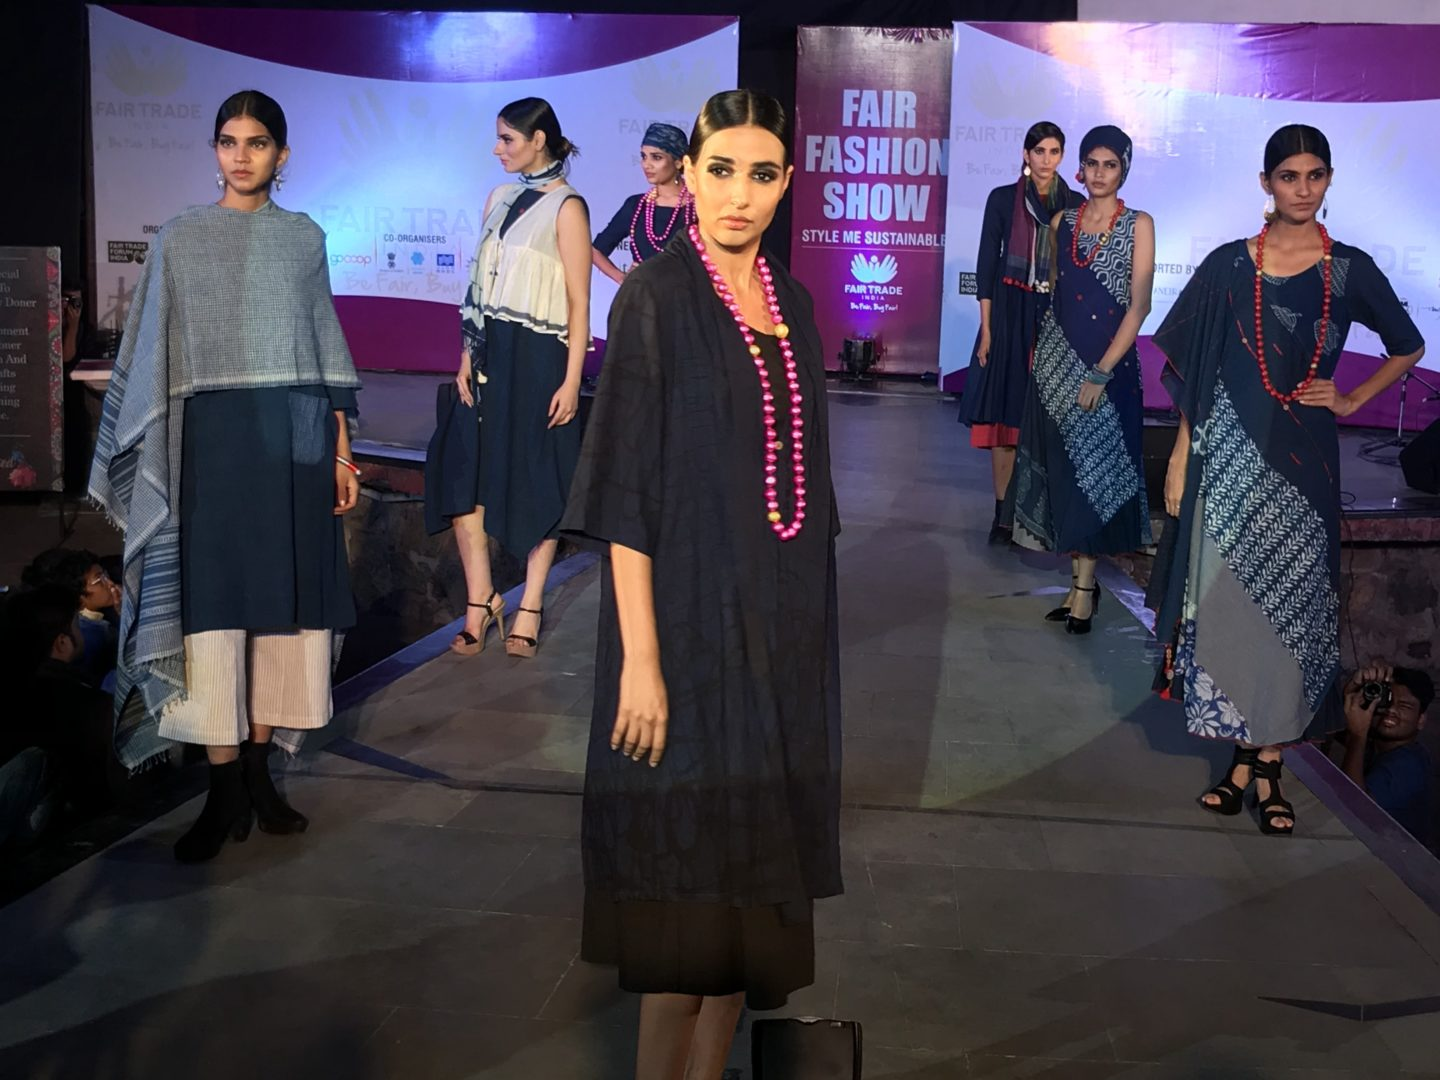 WORLD FAIR TRADE WEEK 2017 – FAIR UTSAV AND FASHION SHOW